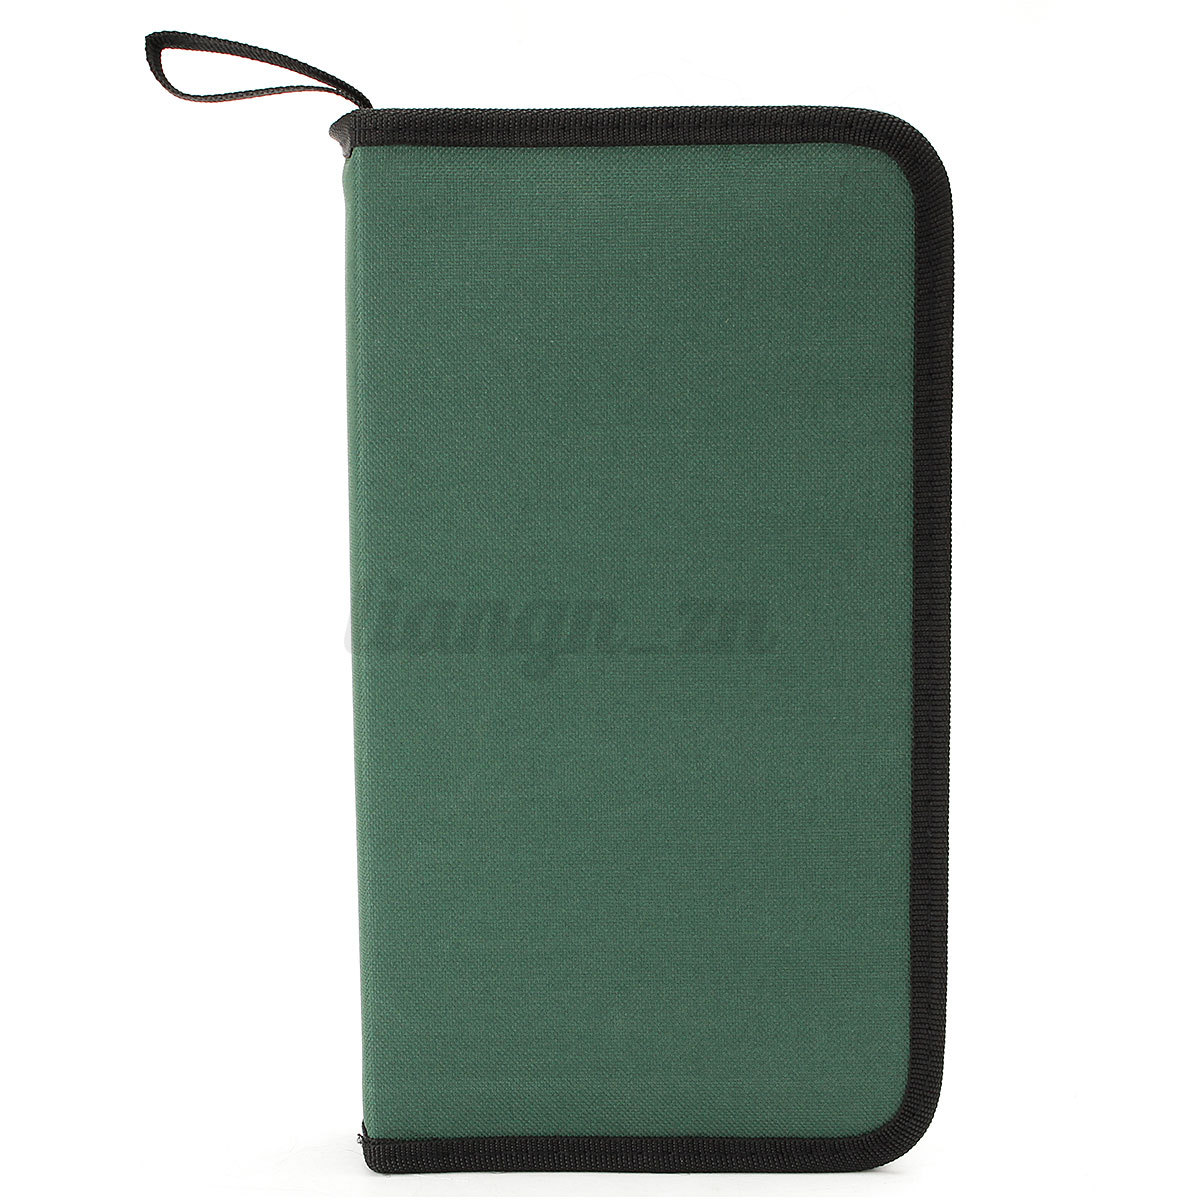 80 cd vcd dvd classeur rangement boite pochette etui range sac sacoche nylon ebay. Black Bedroom Furniture Sets. Home Design Ideas